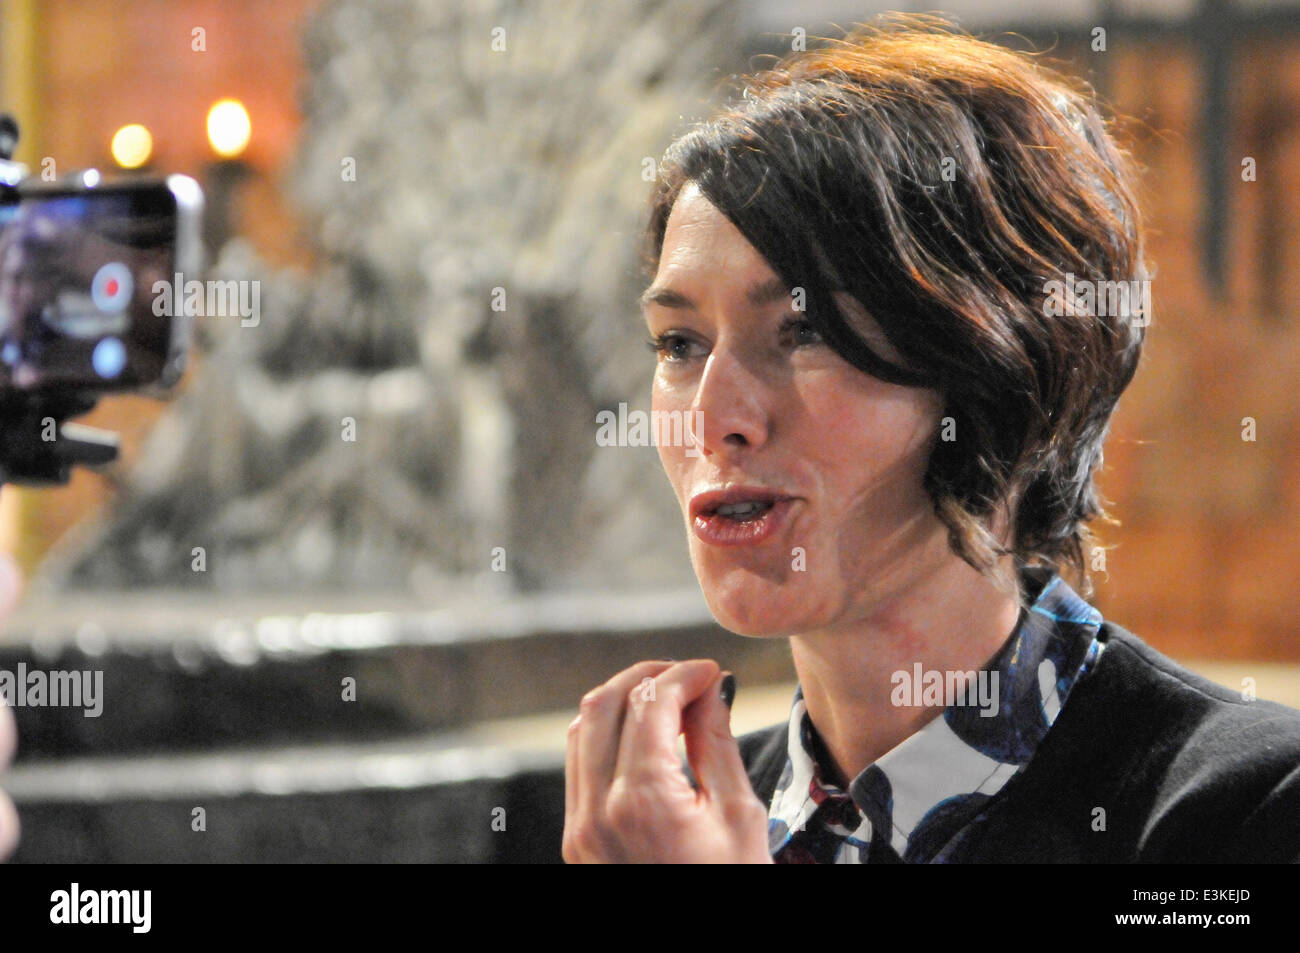 Belfast, Northern Ireland. 24 Jun 2014 - Lena Heady, who plays Queen Cersei Lannister, gives her reaction to meeting - Stock Image